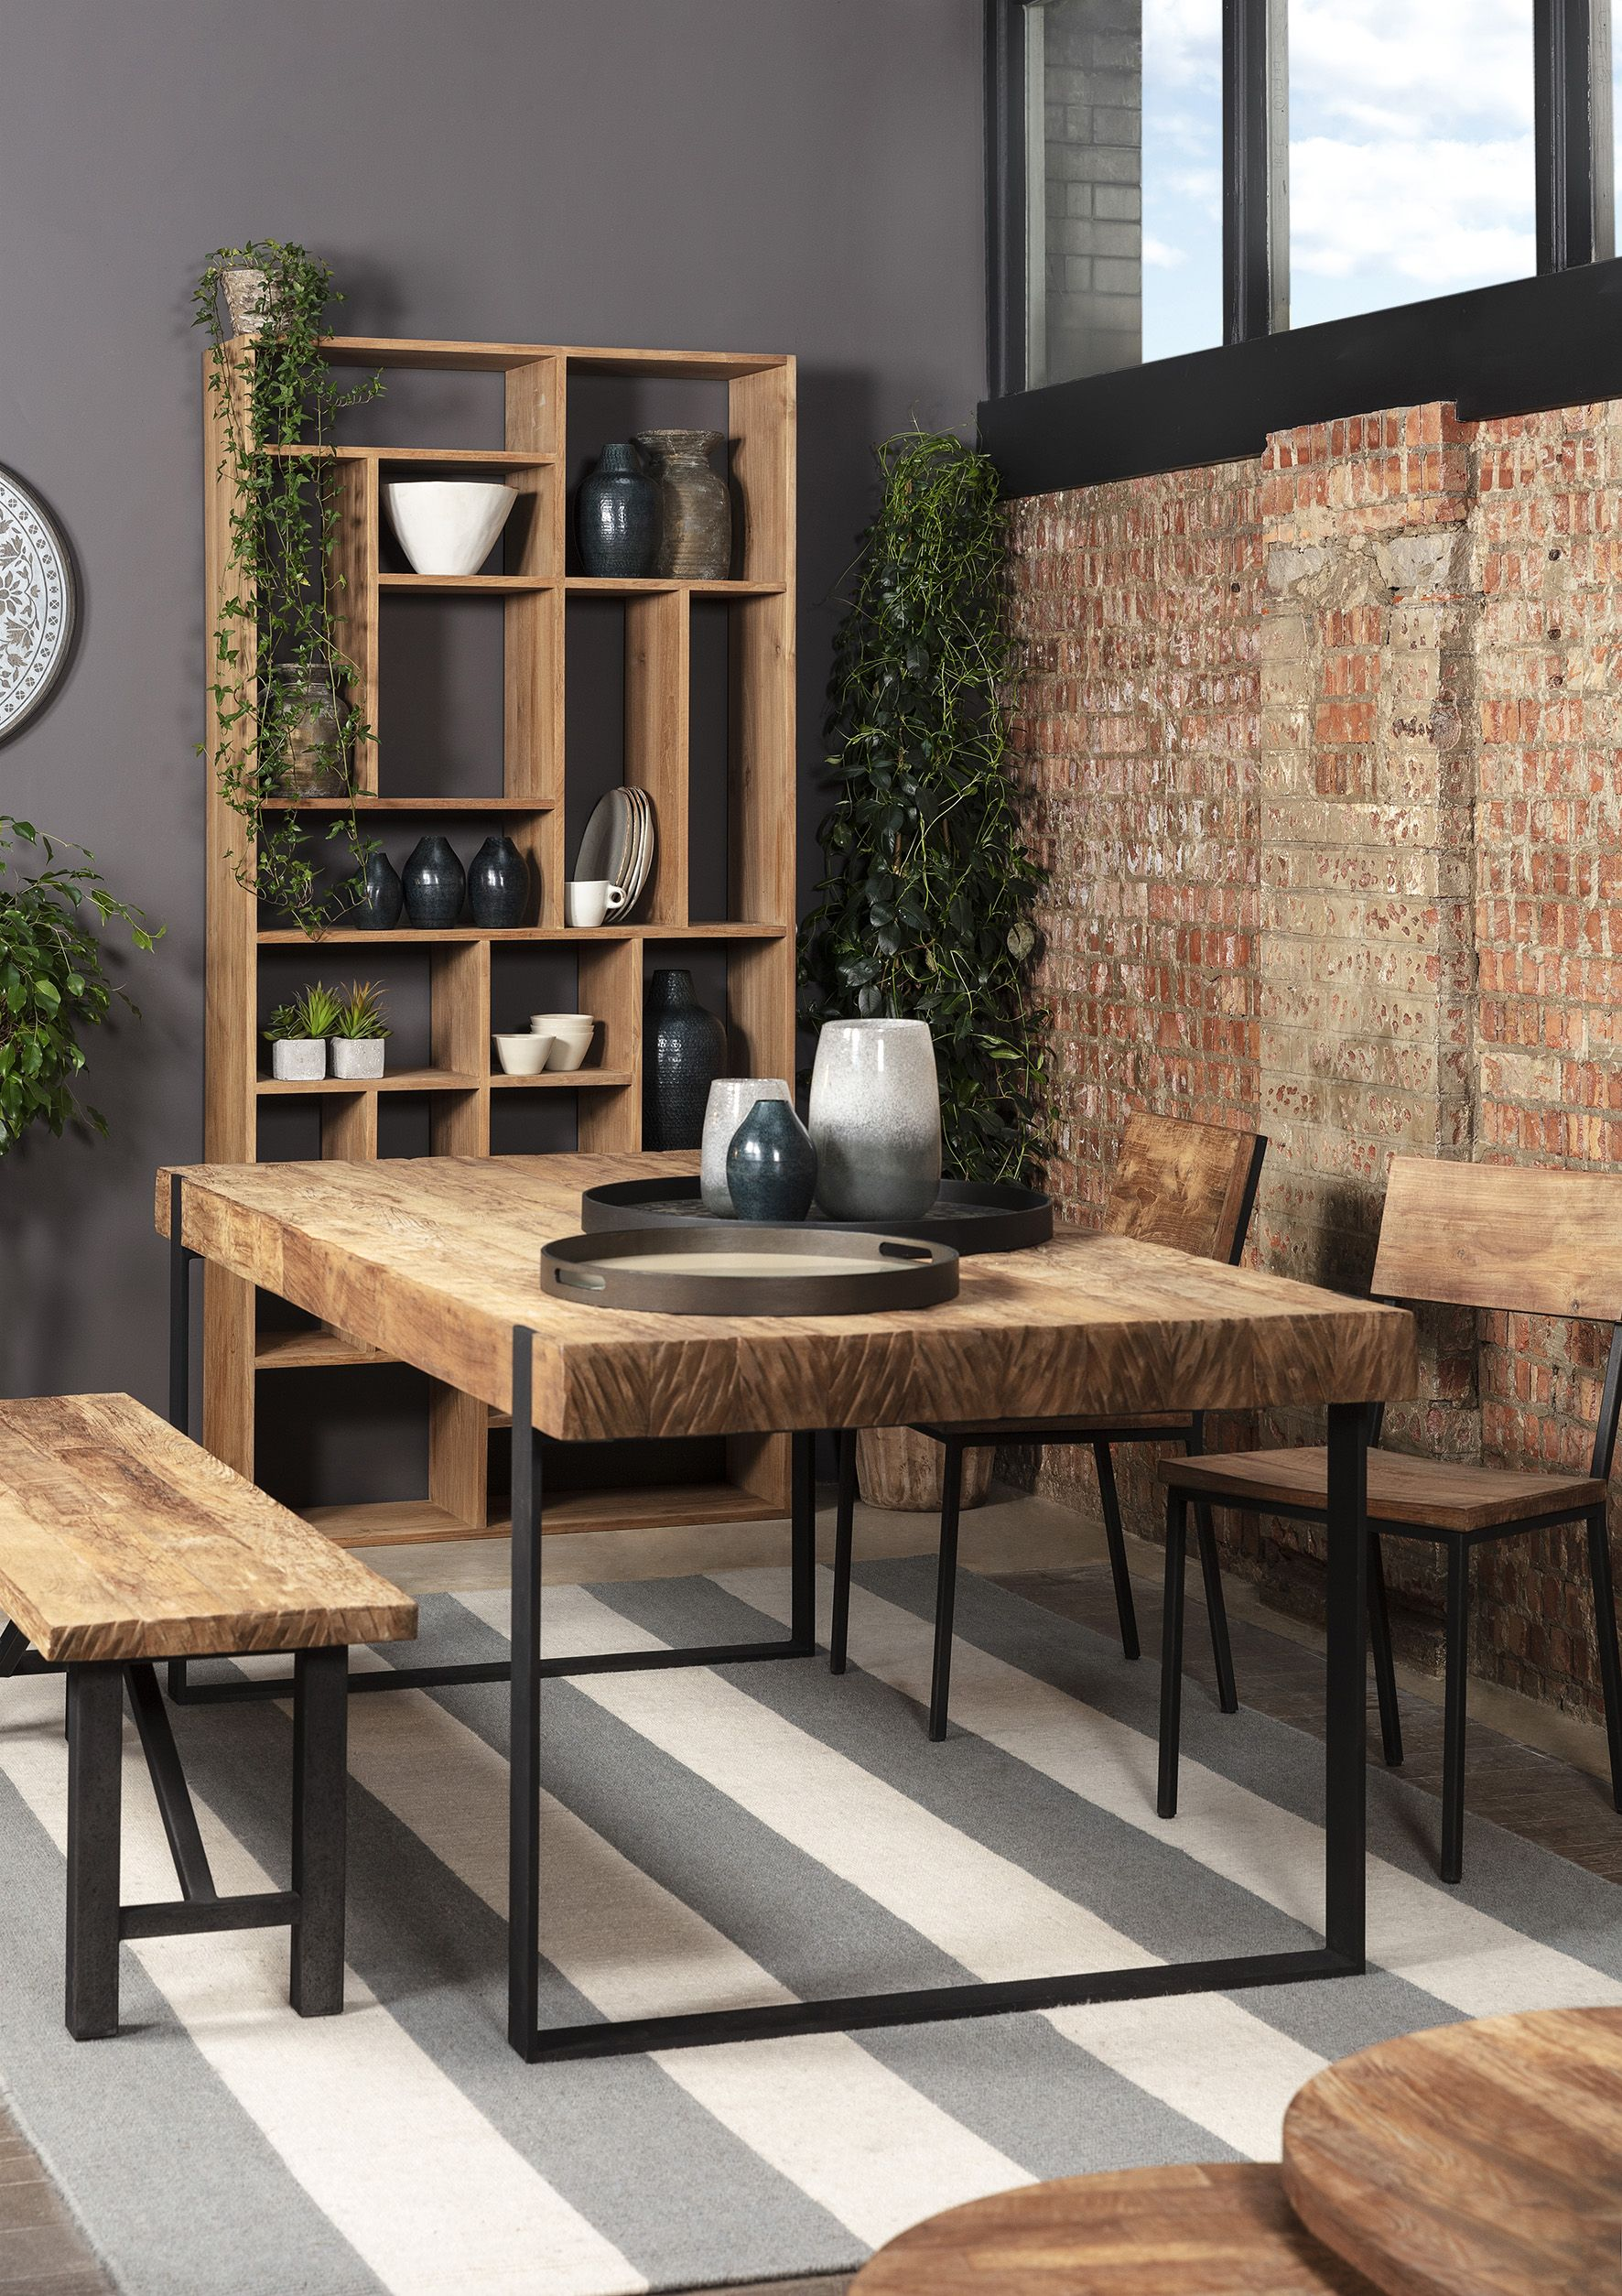 Baxter Sawn Dining Table Crafted in solid teak and vintage iron the Baxter Sawn